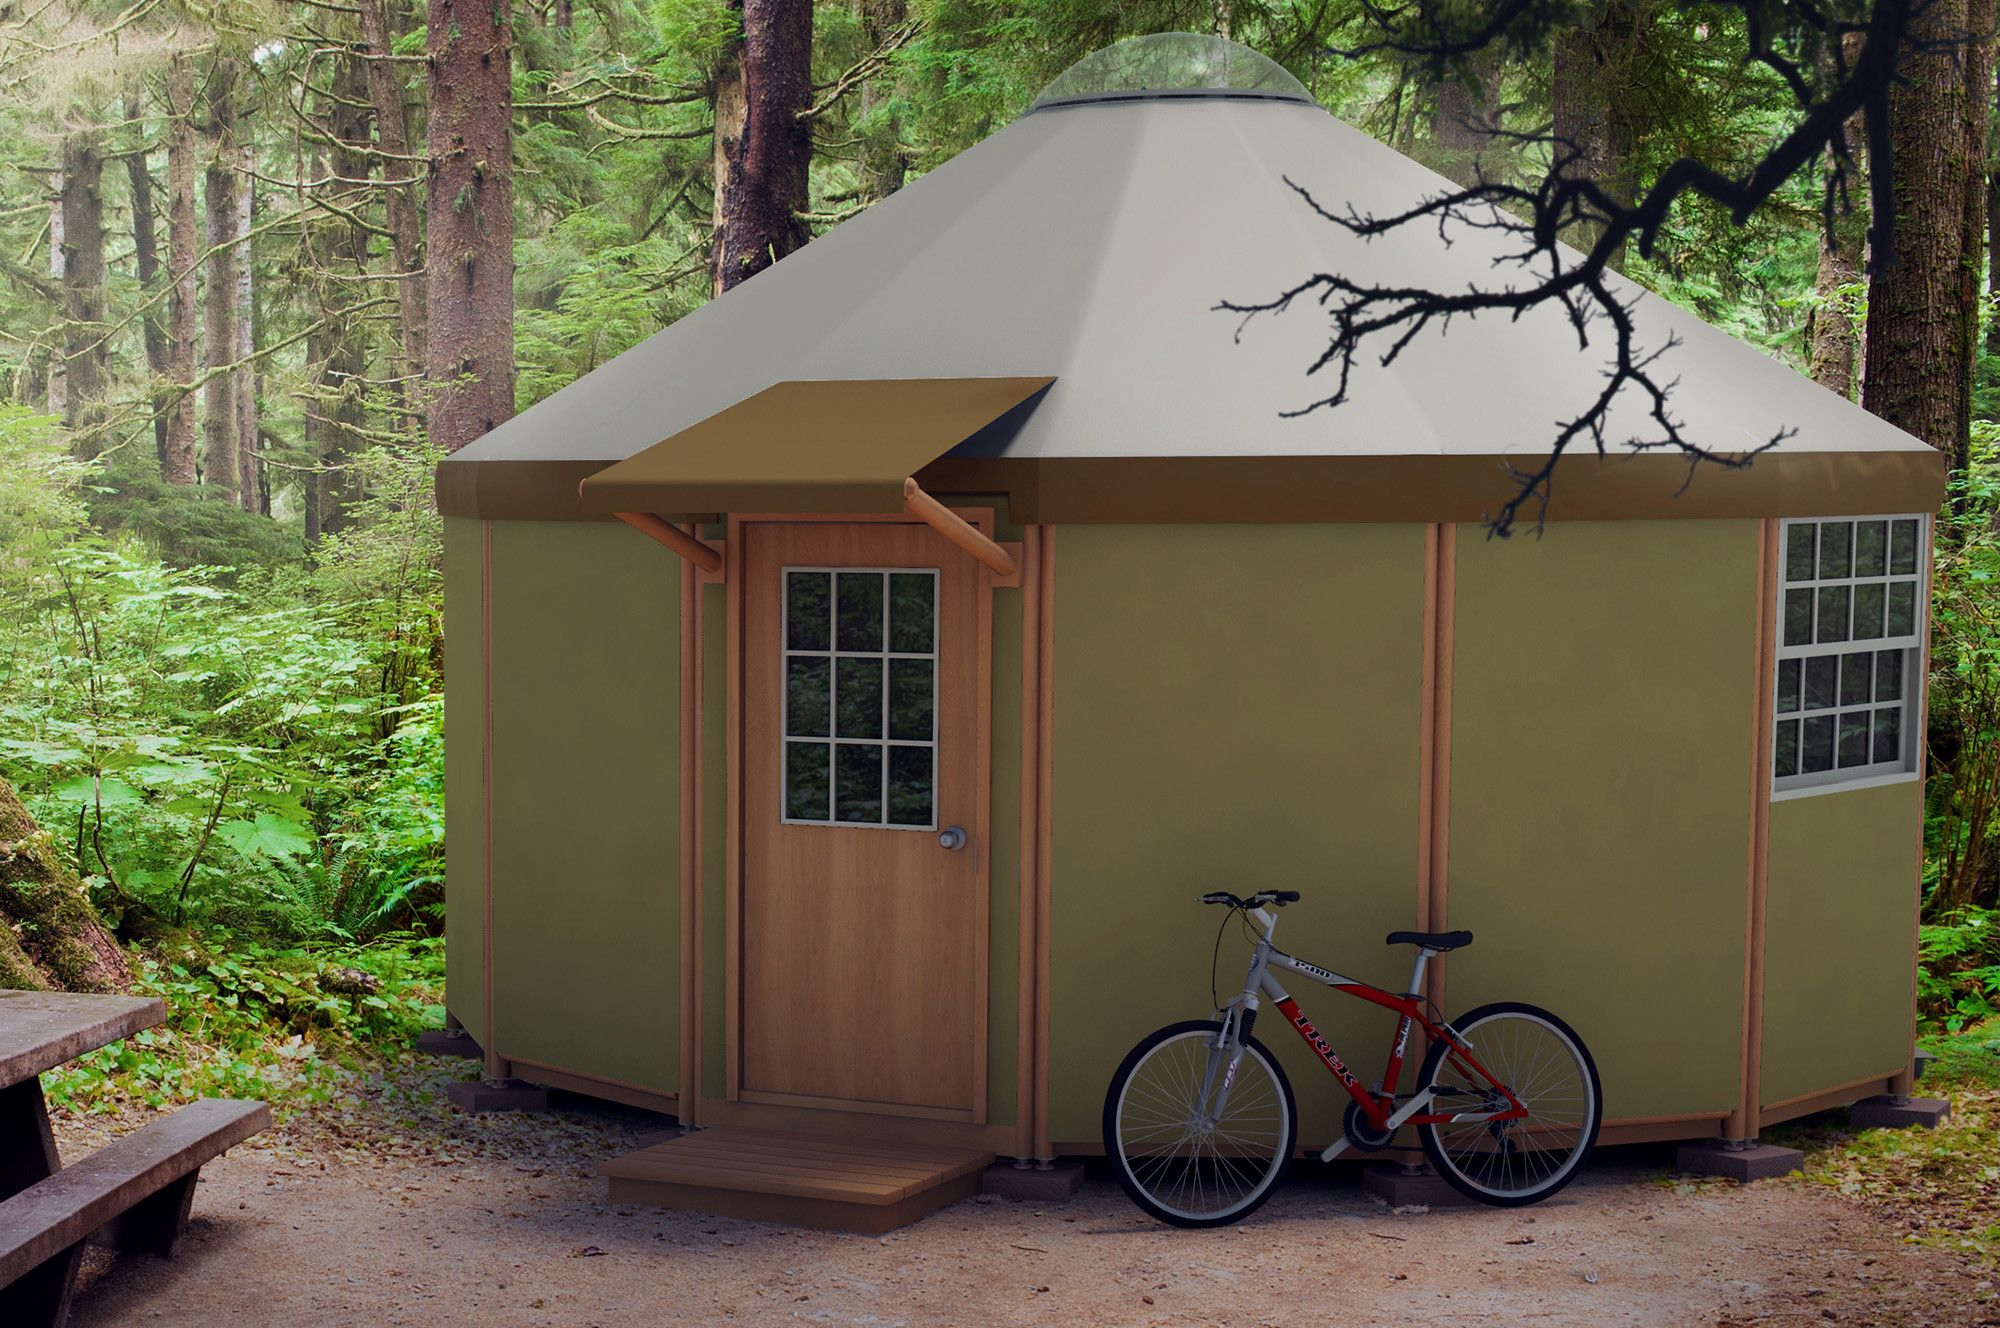 Freedom Yurt Cabin 14 Wall Small Homes for Sale DIY